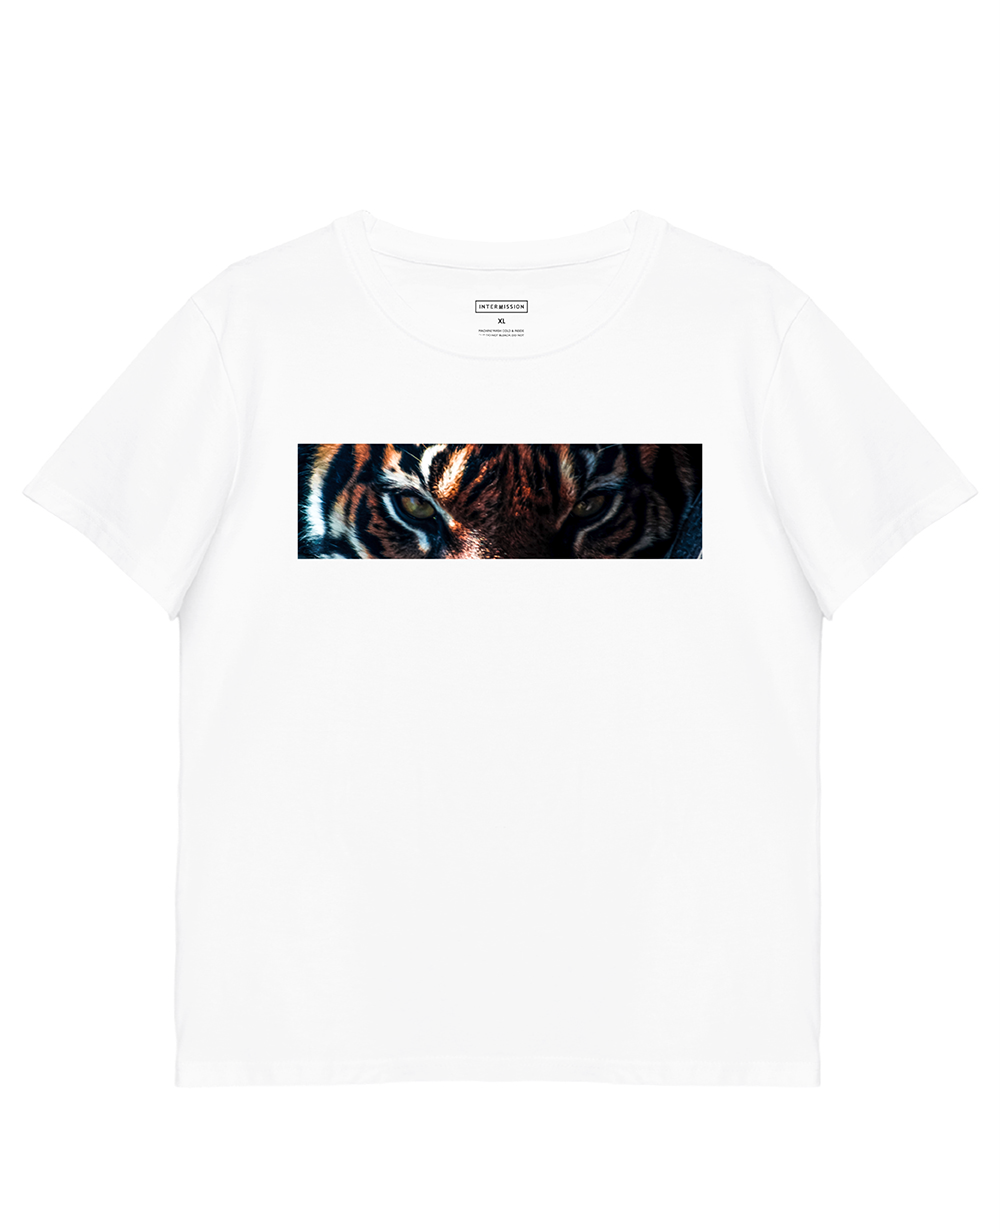 Tiger Print T-Shirt in White - T-Shirts - INTERMISSION - BRANMA